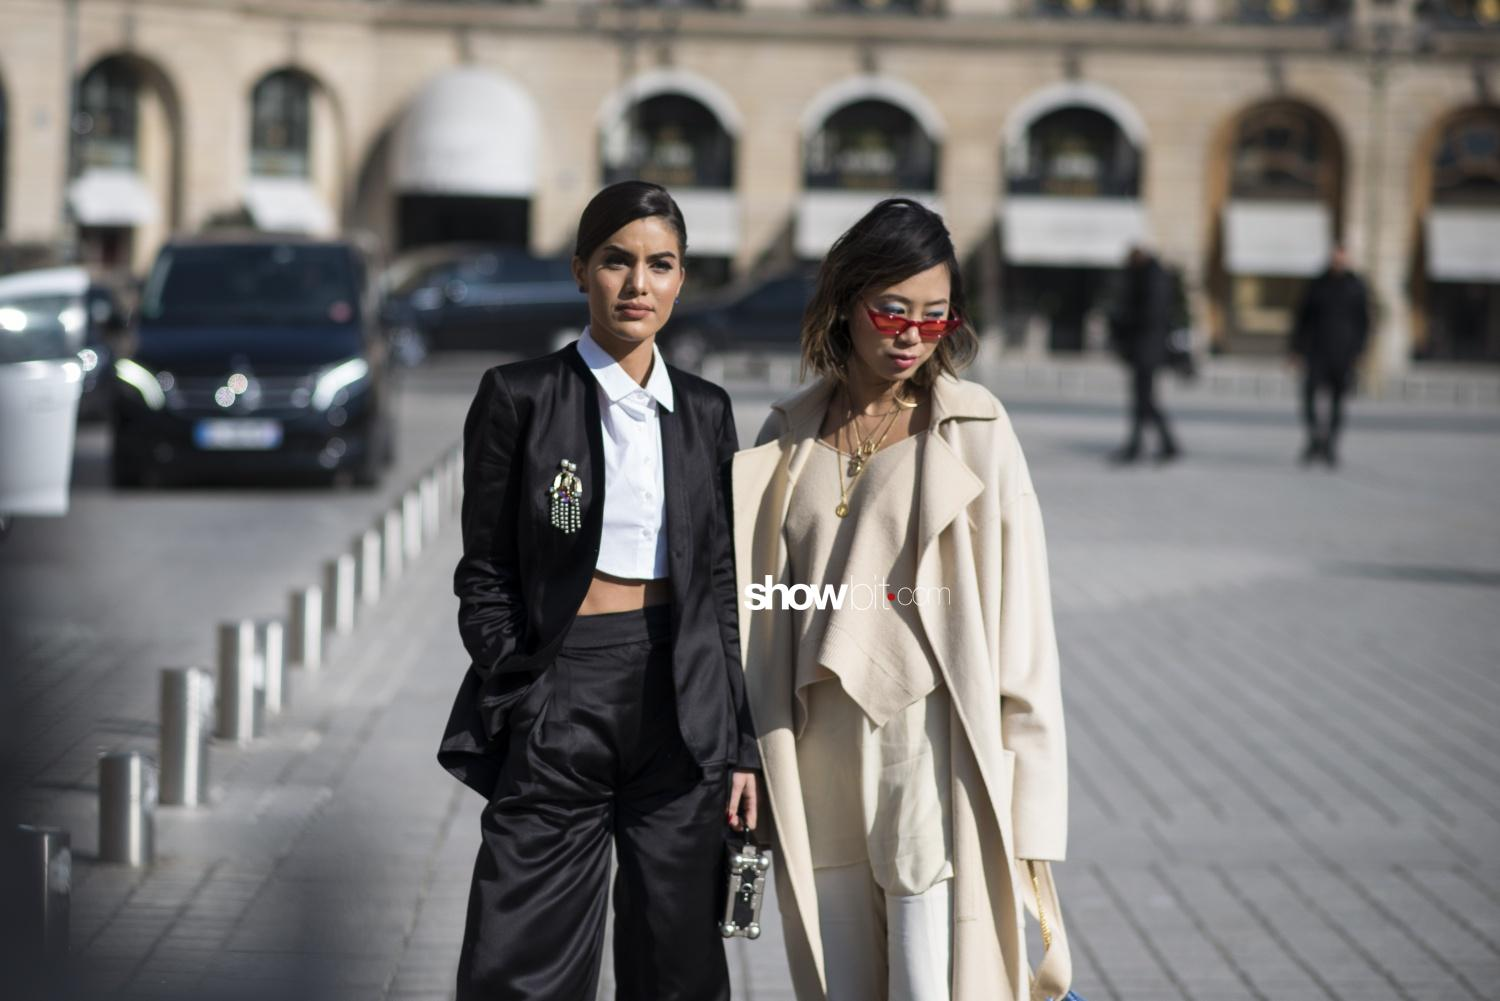 Lanvin people street style Woman Fall Winter 2018 Paris